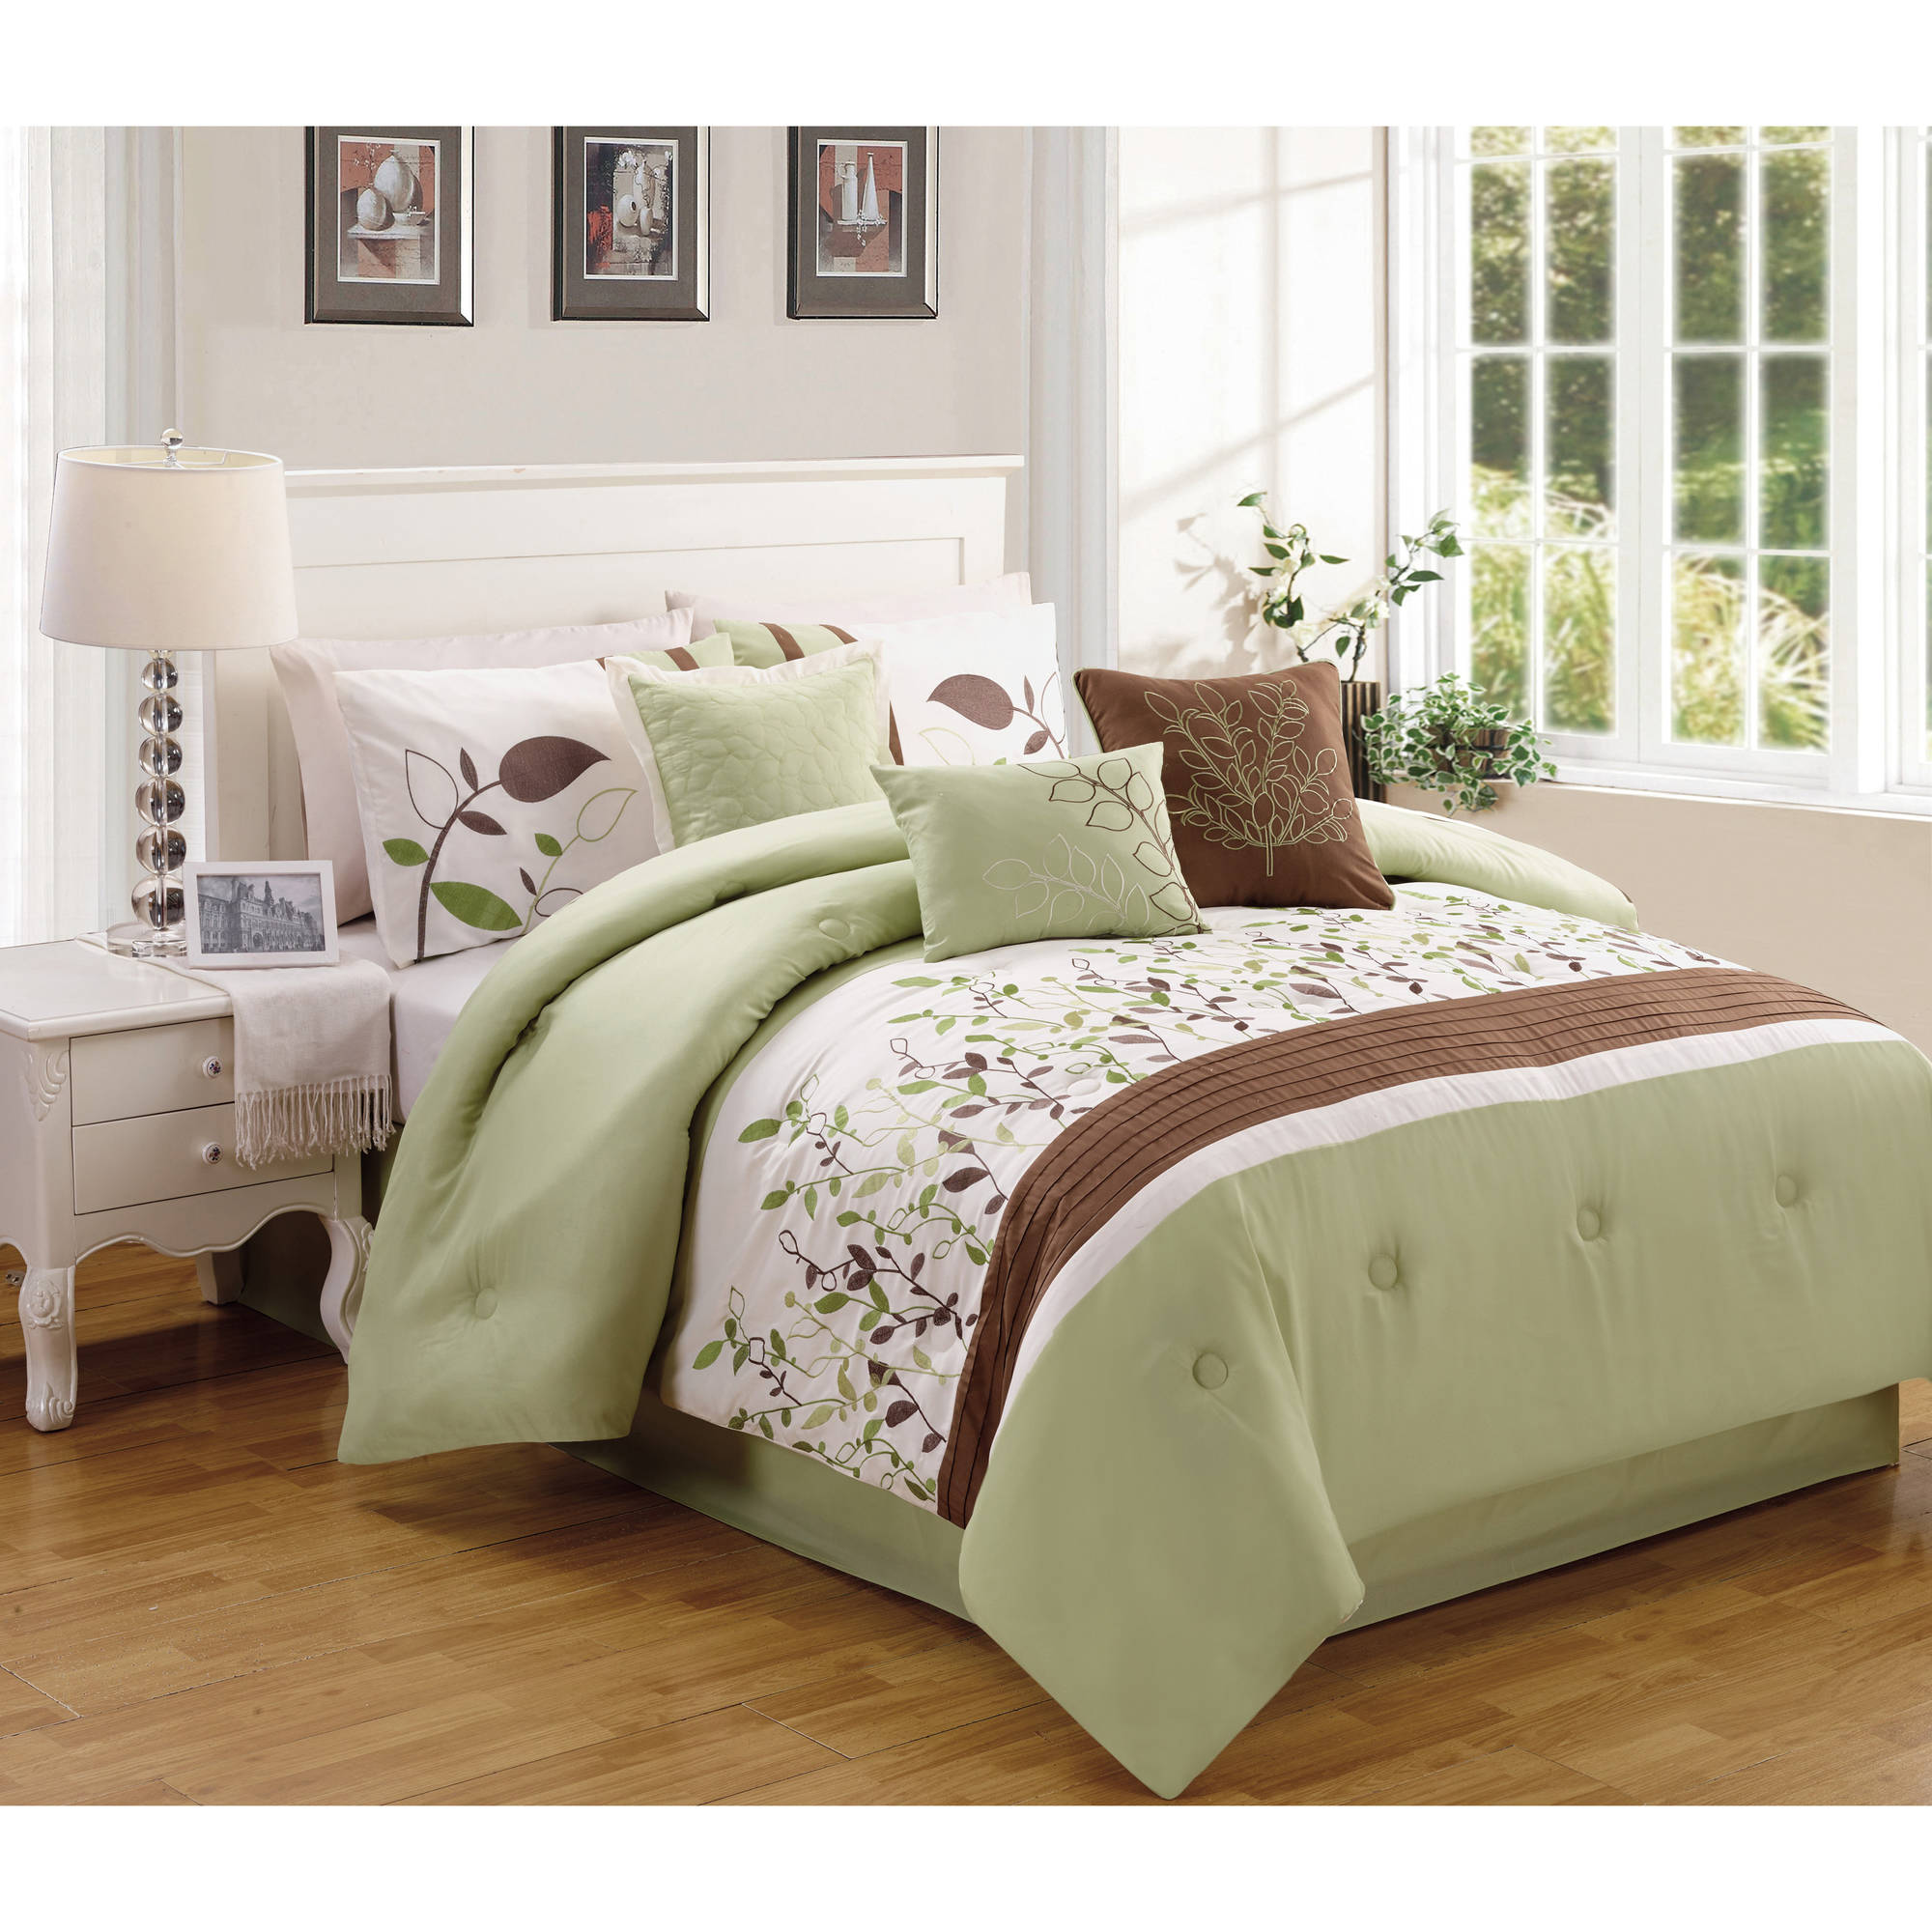 down bath over overstock solid bedding product microfiber color comforter on free orders alternative shipping